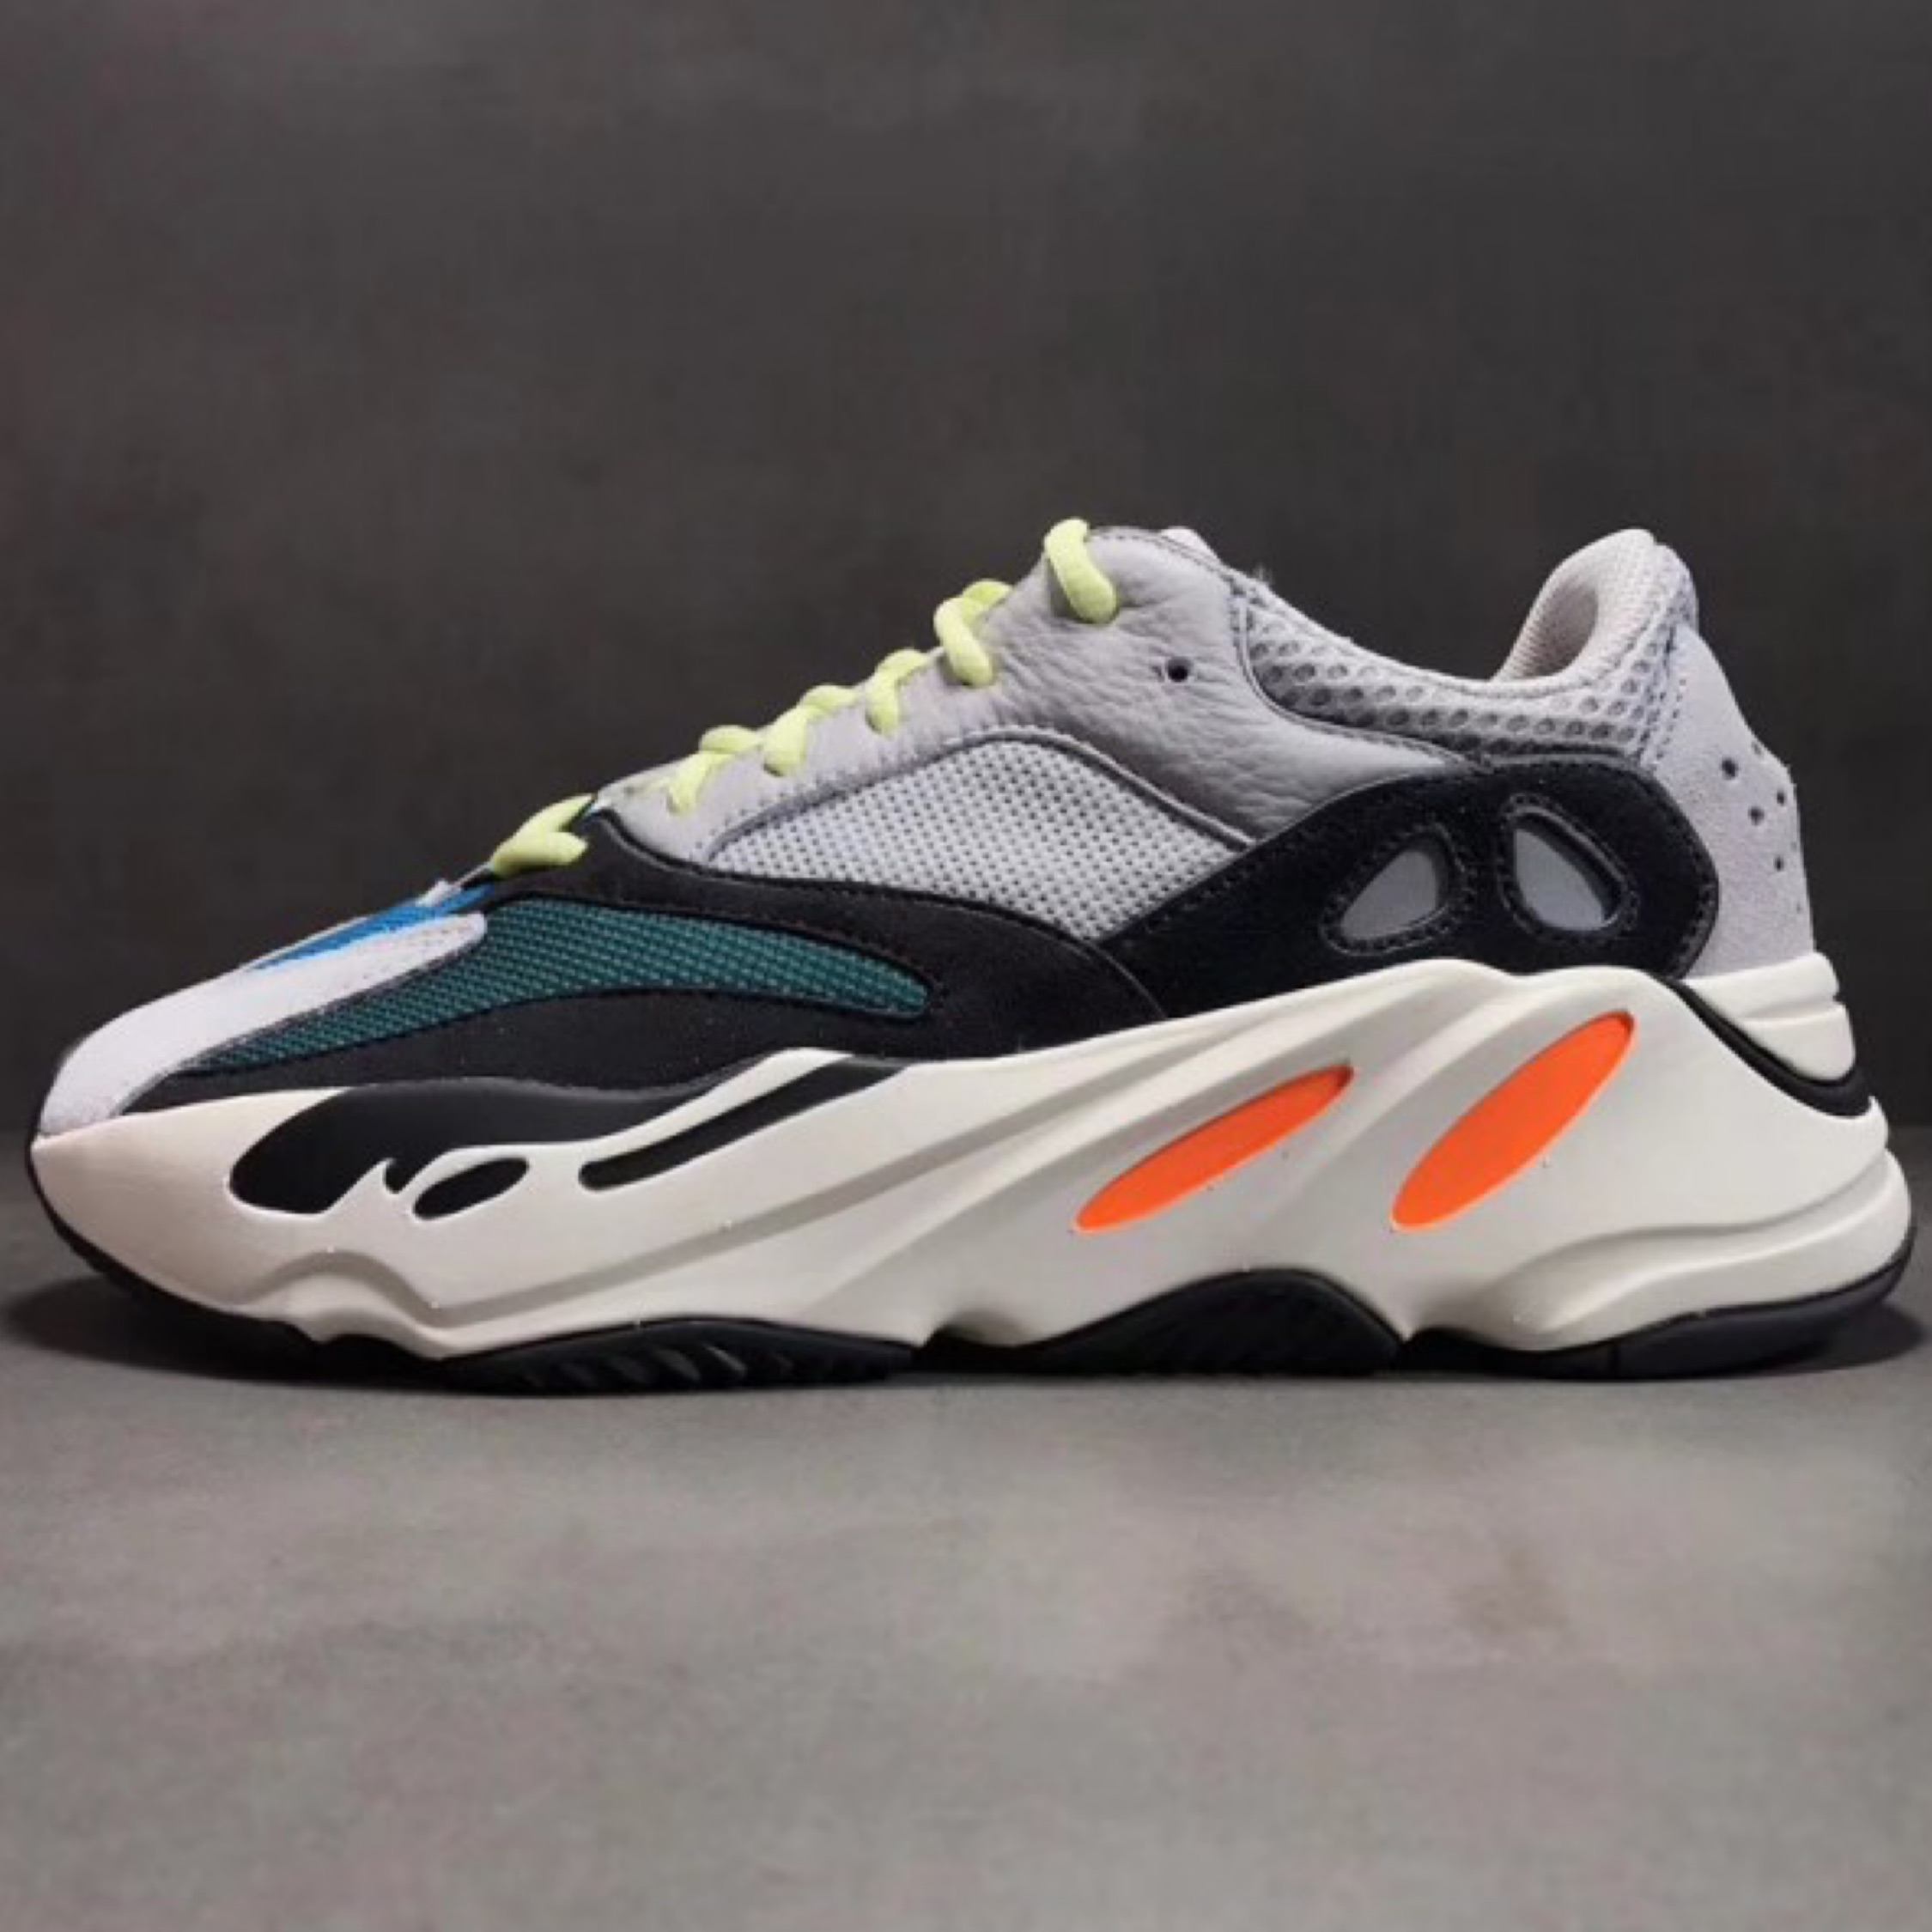 separation shoes 608e1 b33b9 Adidas Yeezy Boost Wave Runner 700 Size 8 Ds